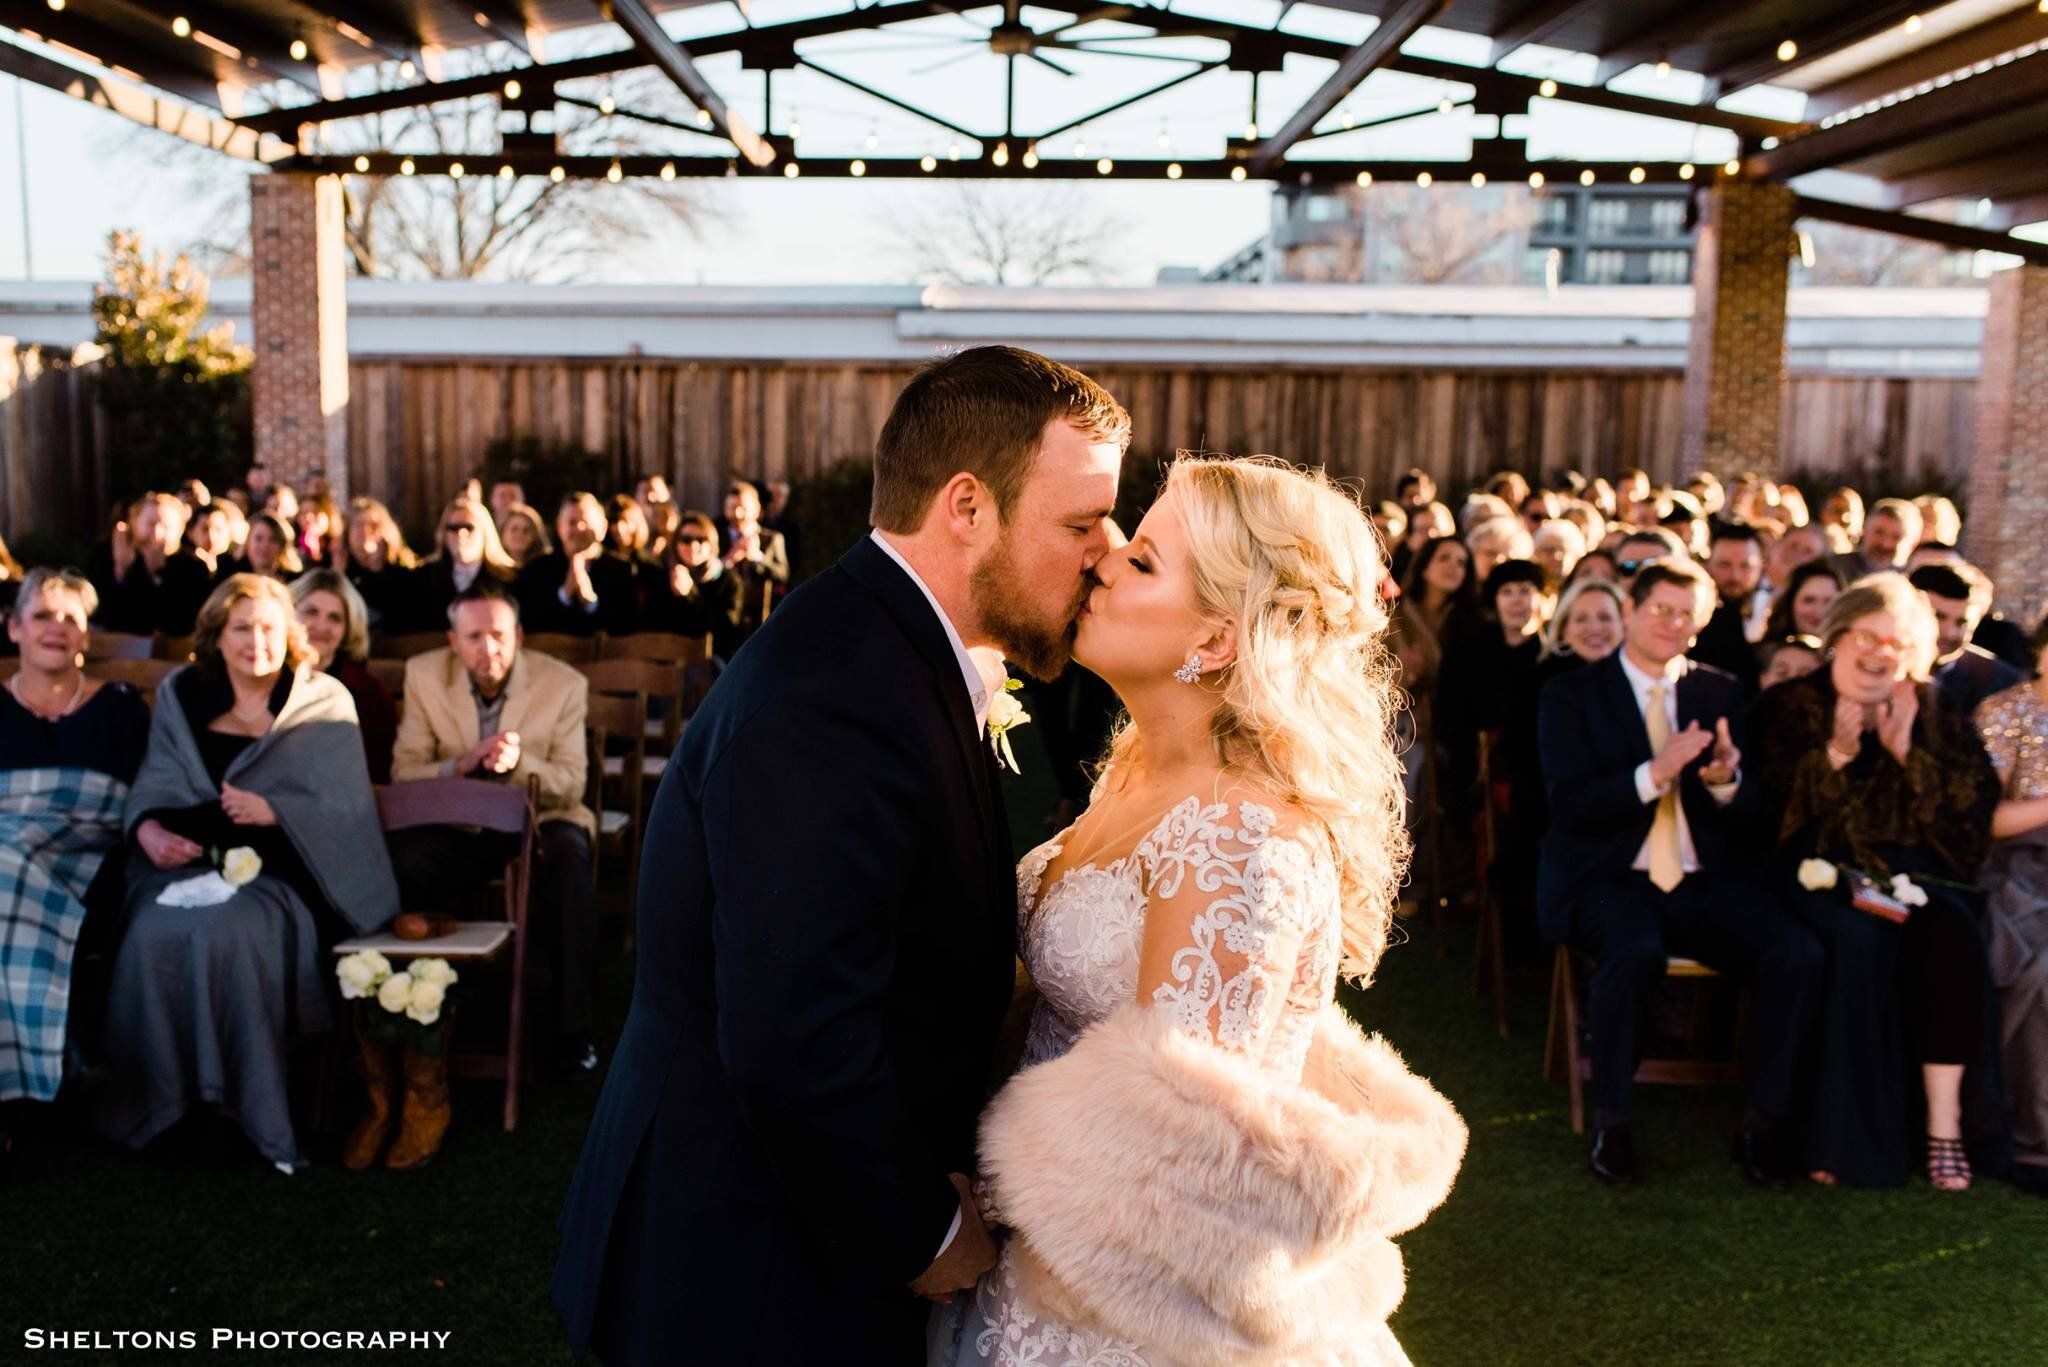 """Ashley Perry - """"Choosing Spencer as our wedding photographer is single-handedly the best choice we made during our entire wedding planning process. Not joking. We used him for engagements, bridals and the big-day (his assistant photographer was exceptional, too). I love capturing every memory I can on film, but am not always"""